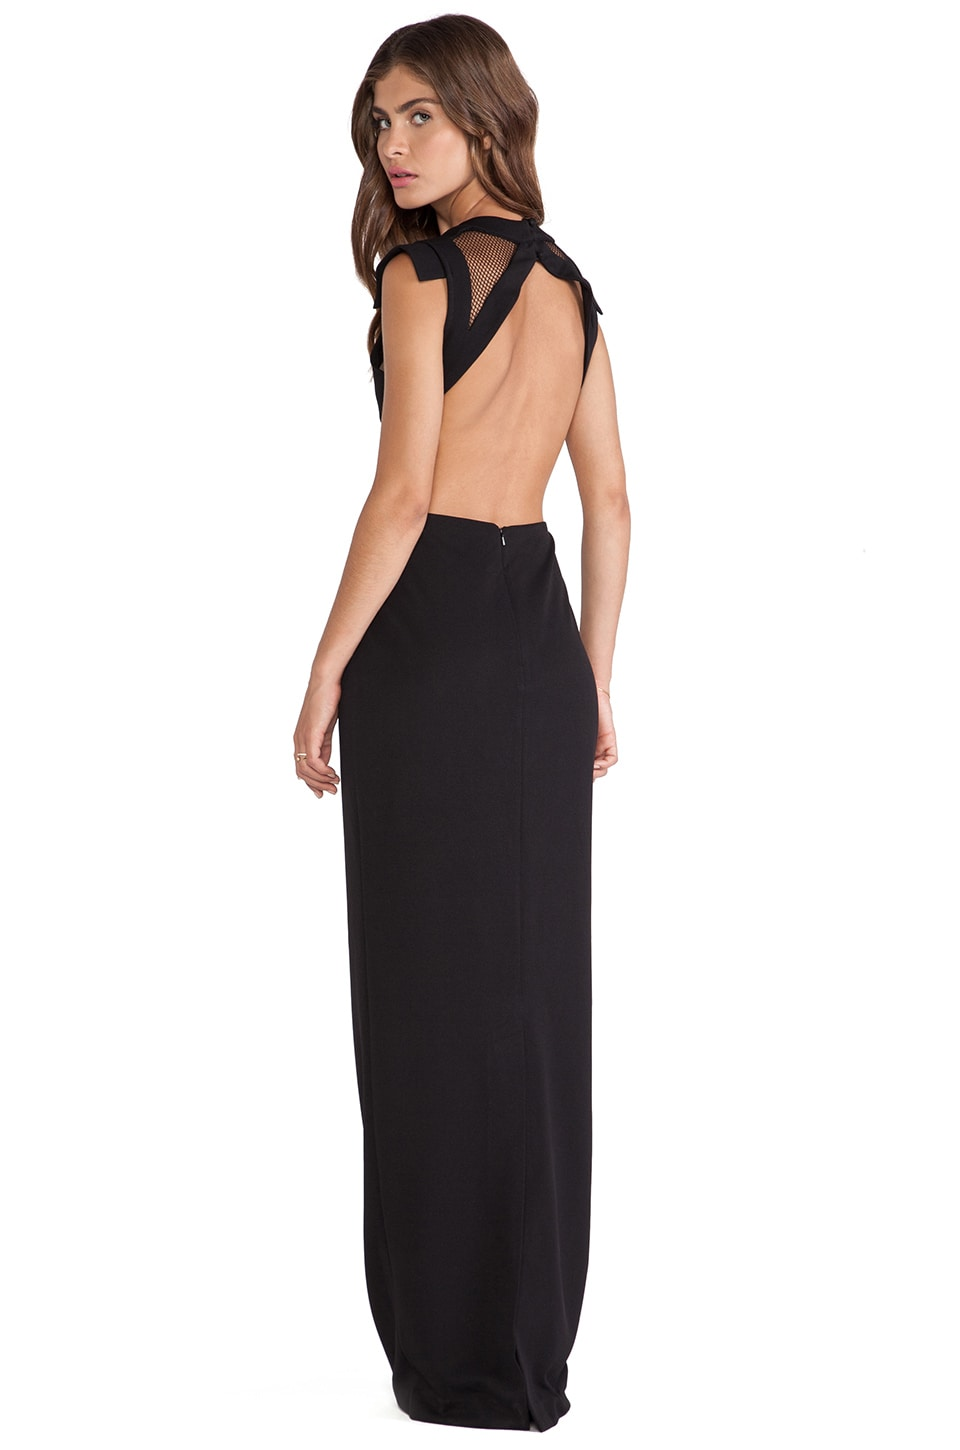 JARLO Marlin Maxi Dress in Black